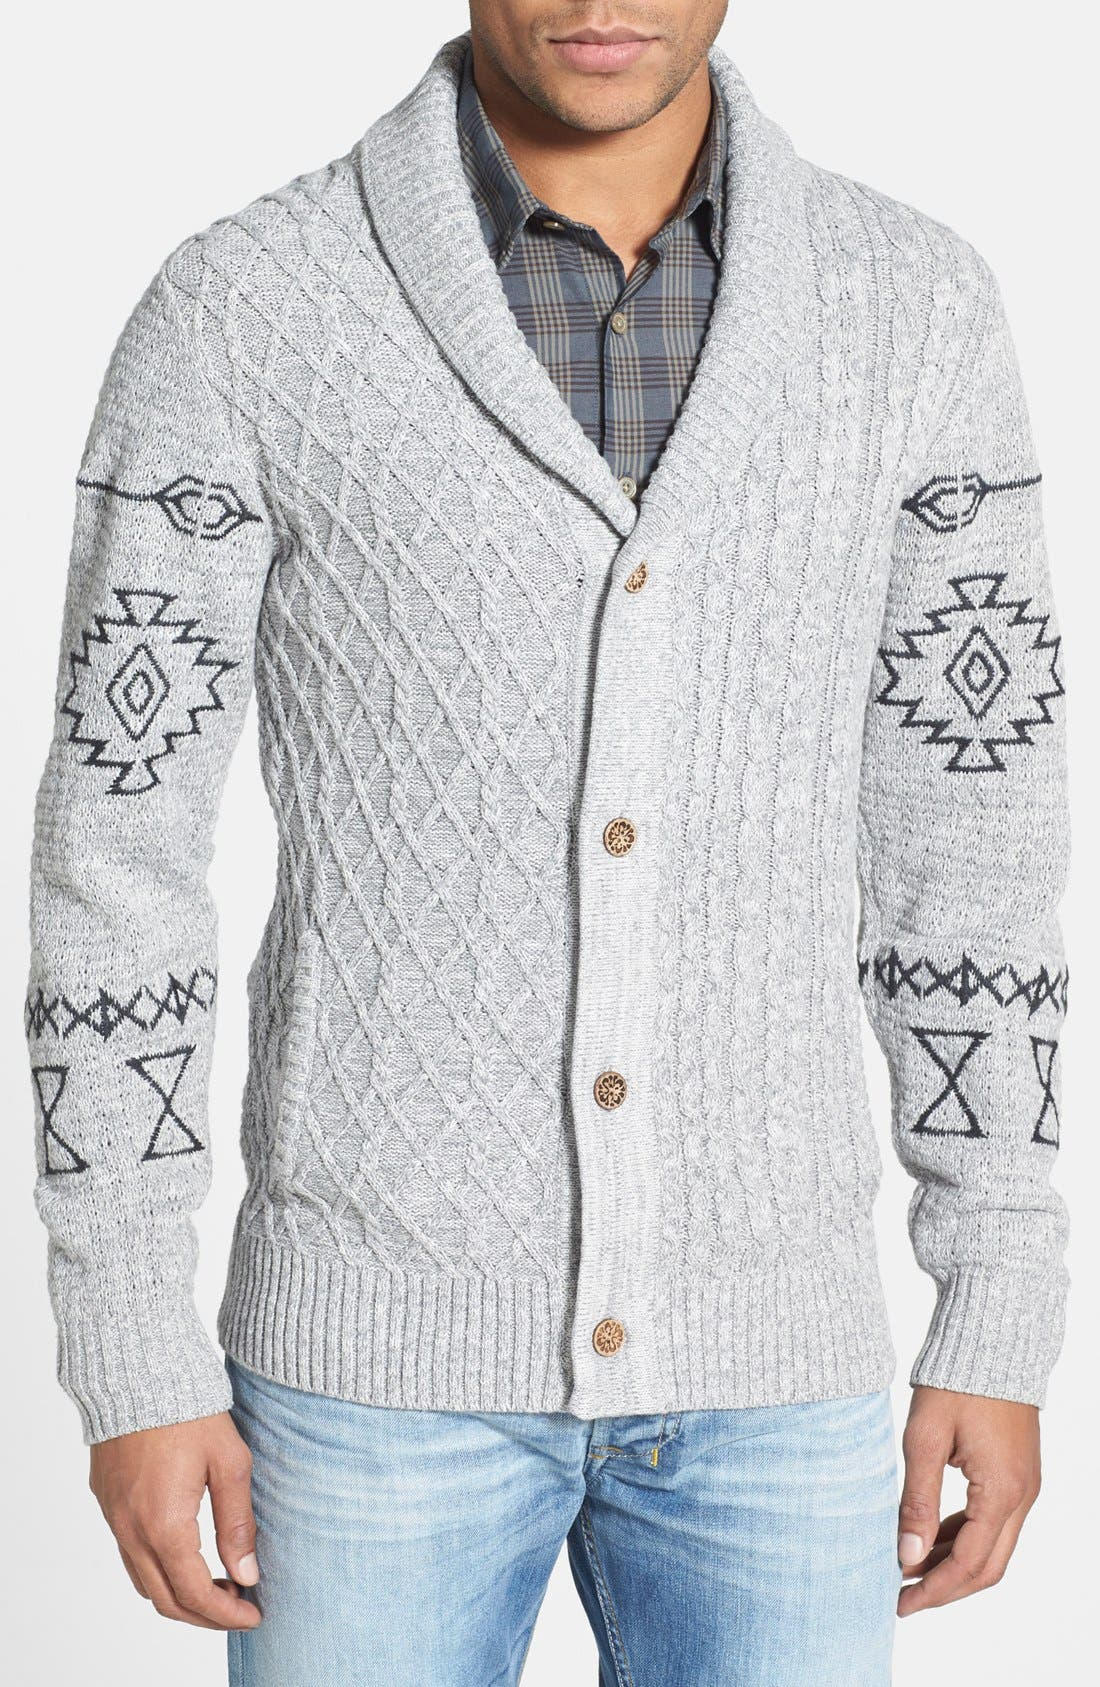 Main Image - ZANEROBE 'Sloan' Cable Knit Shawl Cardigan